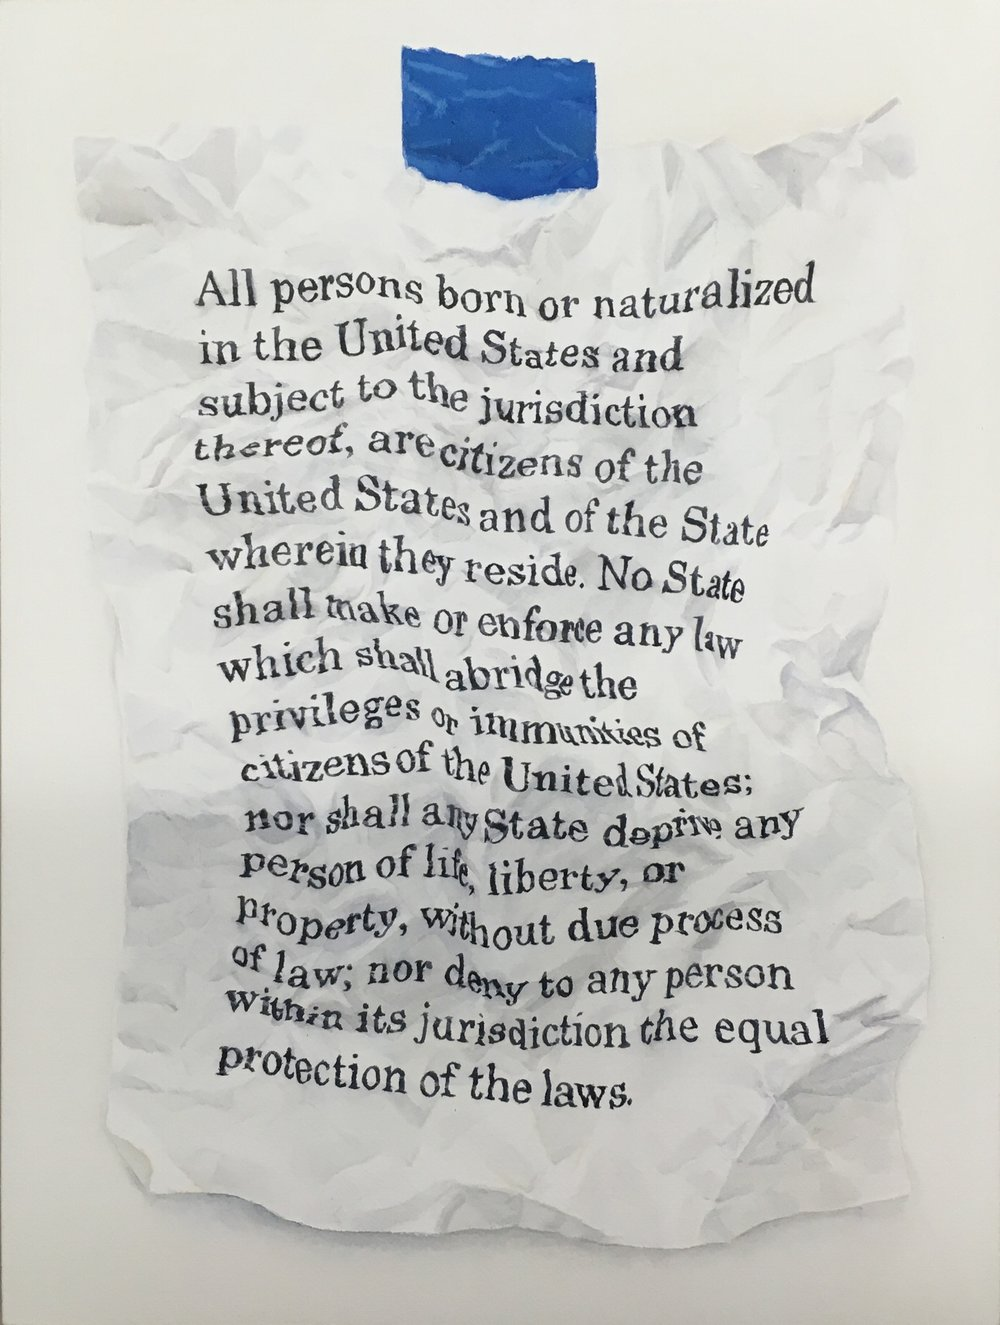 "14th Amendment Watercolor on paper mounted on panel 16""x12, 2017 Signed into law in 1868 it is startling how long it has taken for this amendment to take hold. It was originally designed to grant rights to slaves recently freed following the civil war. Pushed through by Republicans, who in the age of (post)Lincoln, were more progressive and forward thinking than they present themselves today. Still. Almost a century and a half later and these truths are still not self evident. Sometimes we have to look back at what we forgot to correct in order to move forward."